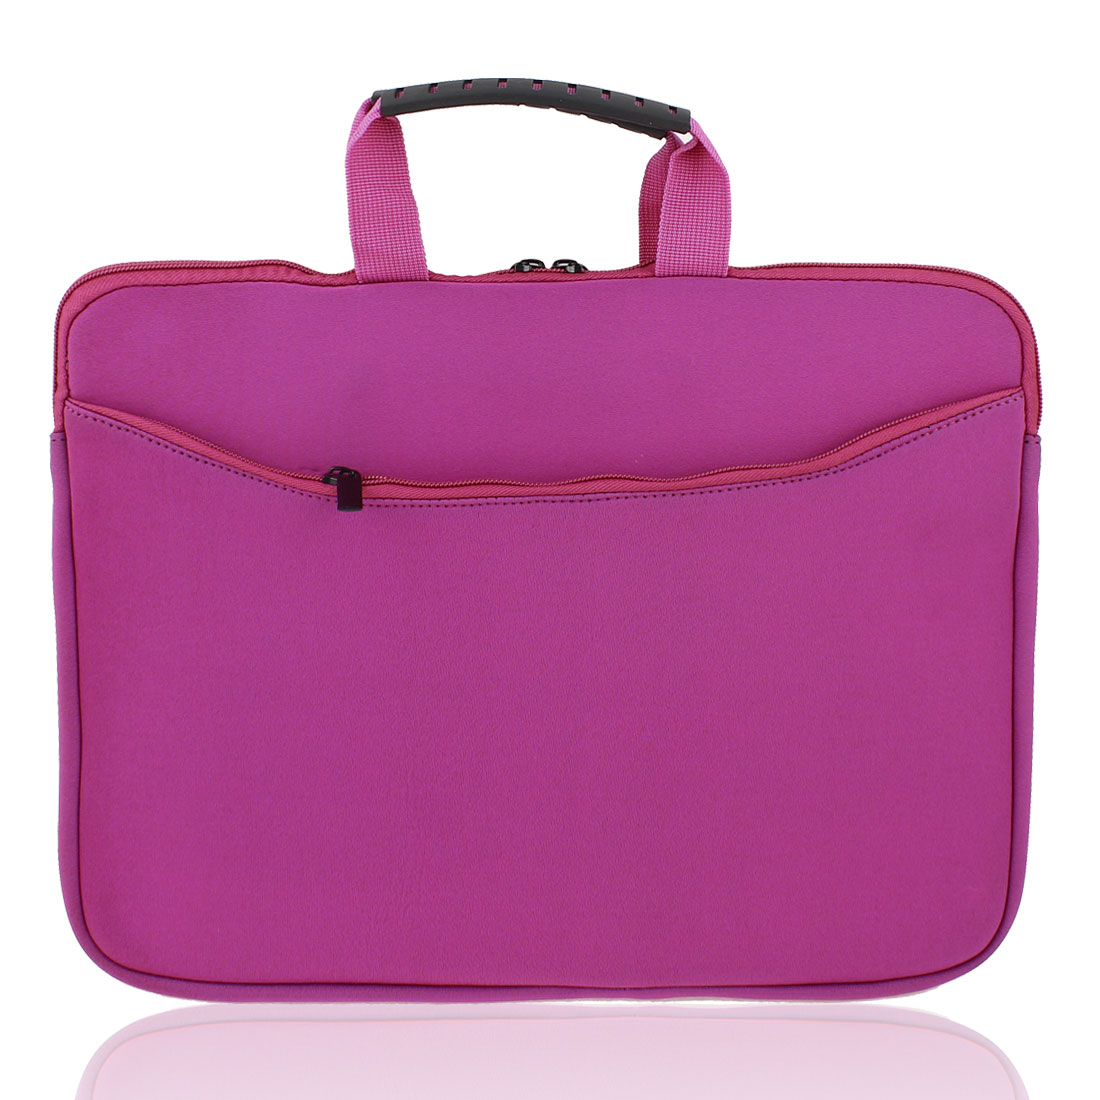 "14"" Neoprene Laptop Netbook Notebook Zipper Sleeve Case Bag Cover Pouch Fuchsia"